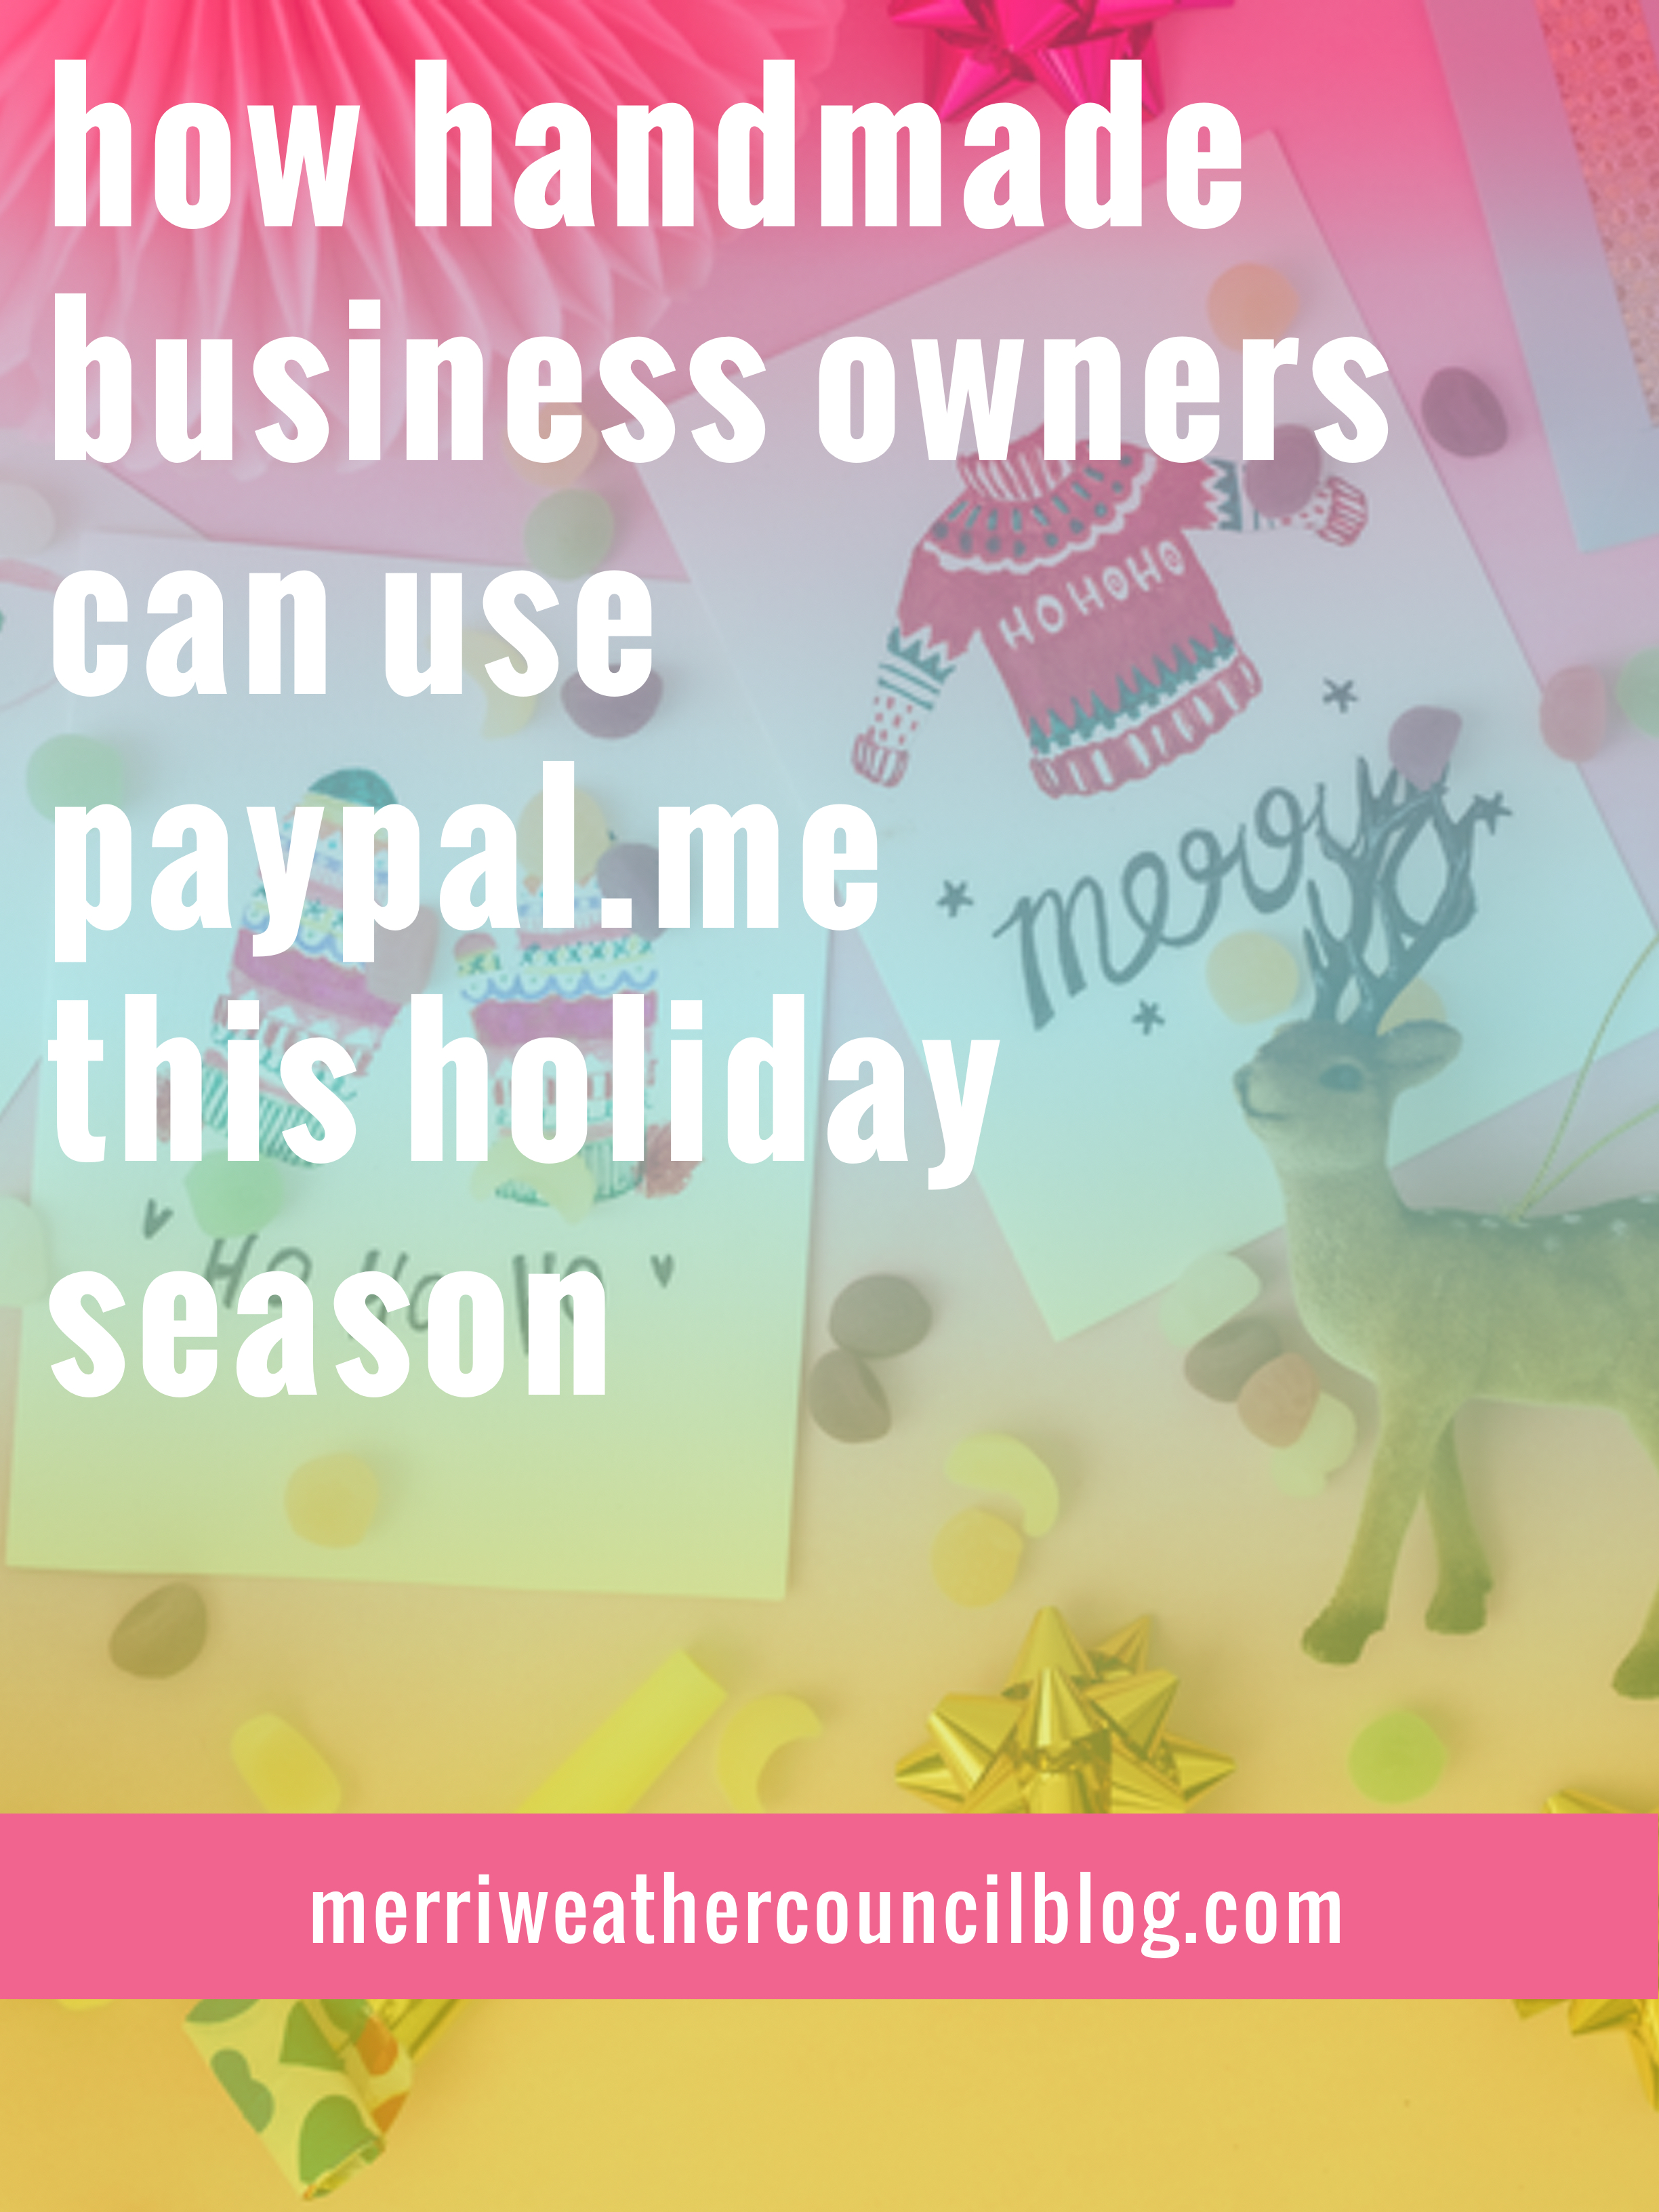 paypal.me for handmade sellers | the merriweather council blog